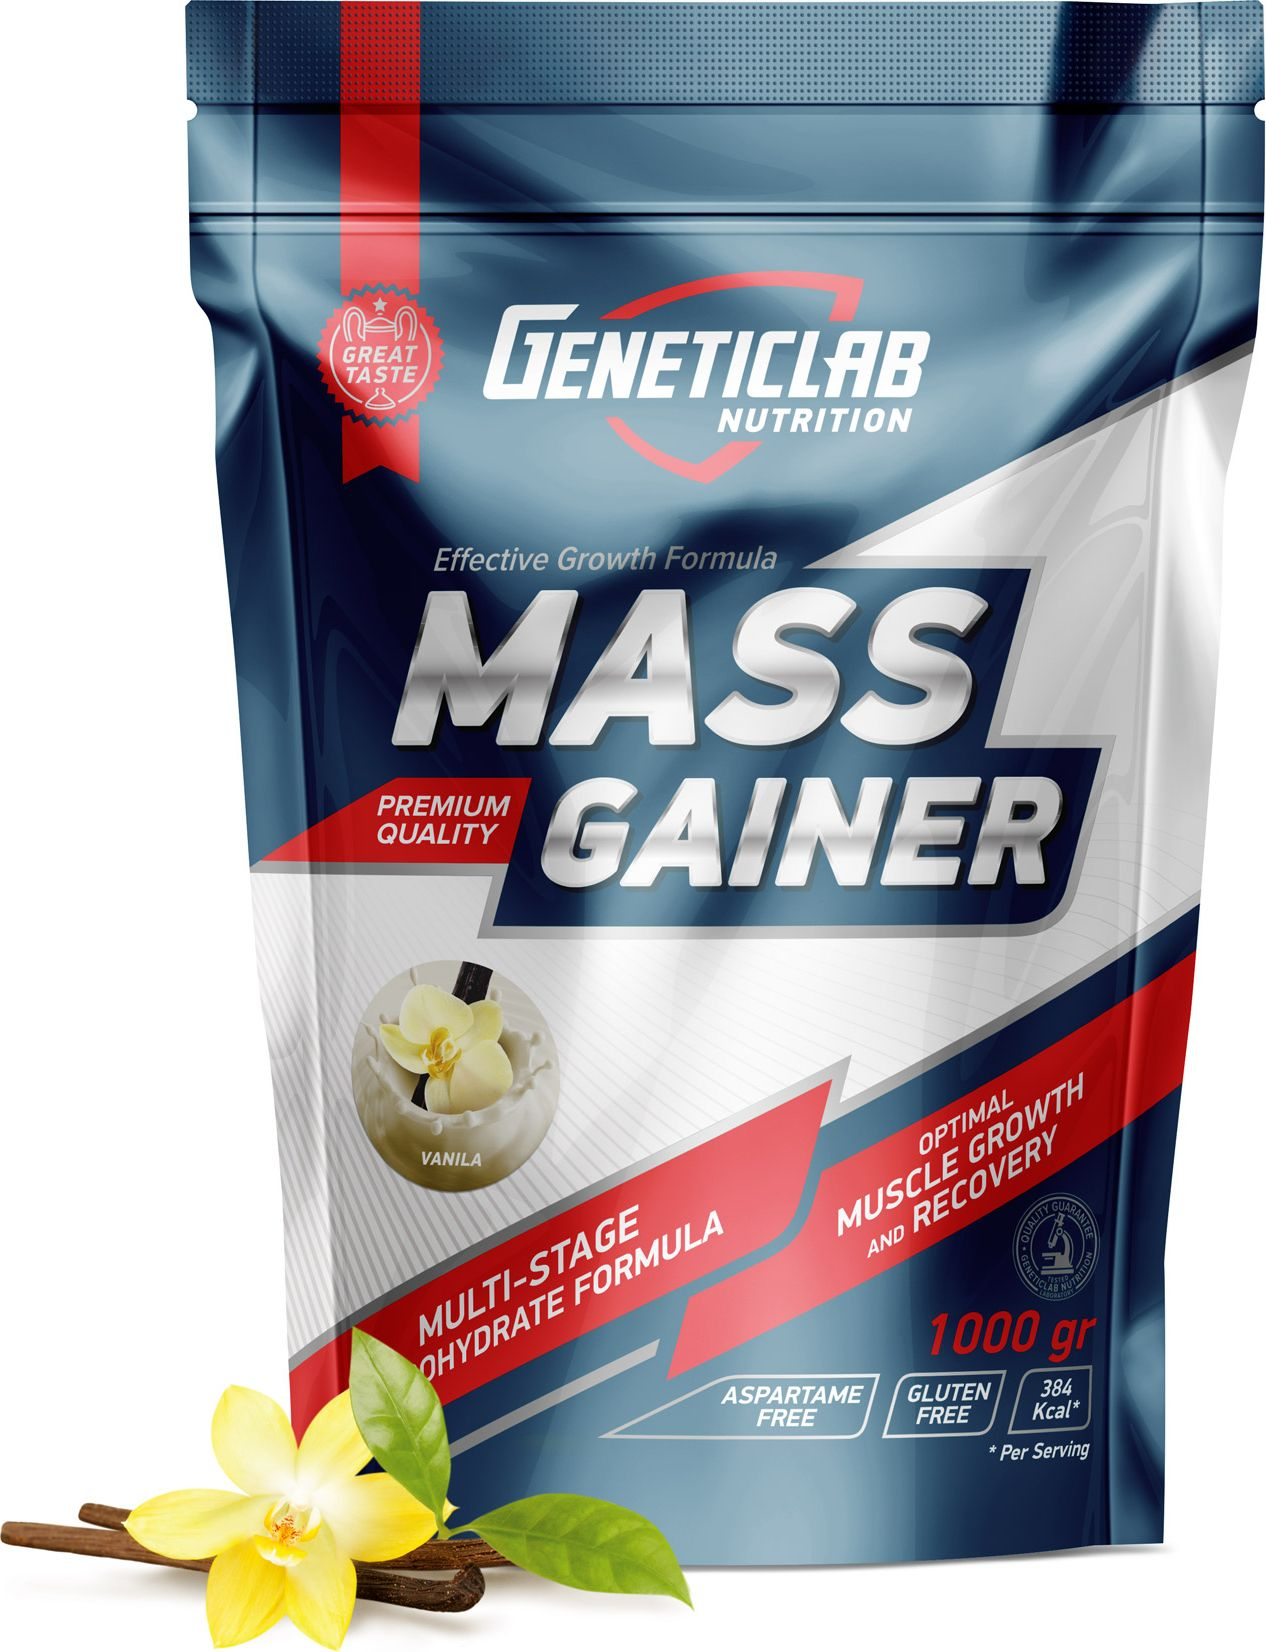 Гейнер Geneticlab Mass Gainer , ваниль, 1000 г гейнер geneticlab nutrition mass gainer шоколад 1000 г